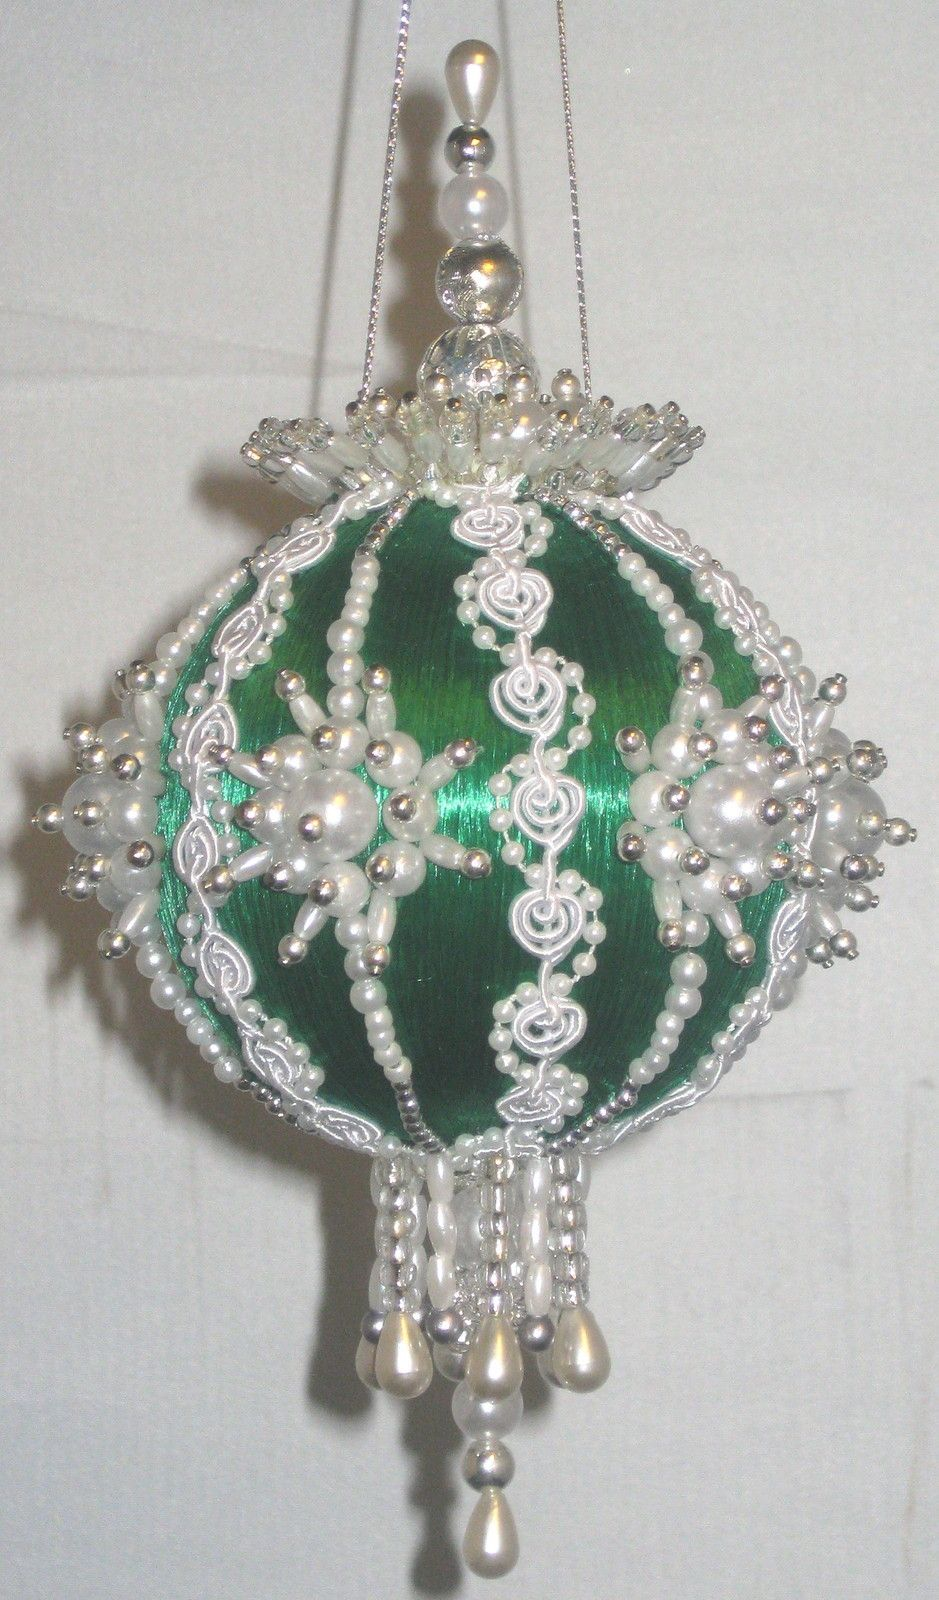 Very Pretty Jeweled Christmas Ornaments Christmas Ornament Crafts Handmade Christmas Ornaments